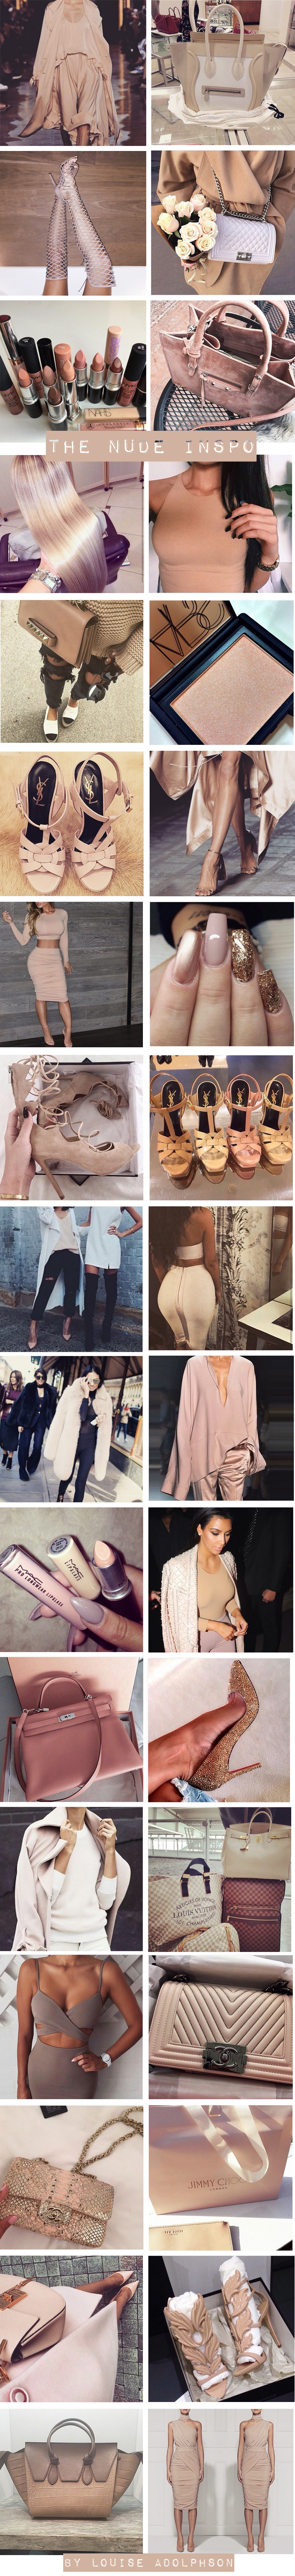 nude neturals beige fall fashion inspiration gorgeous fall clothes